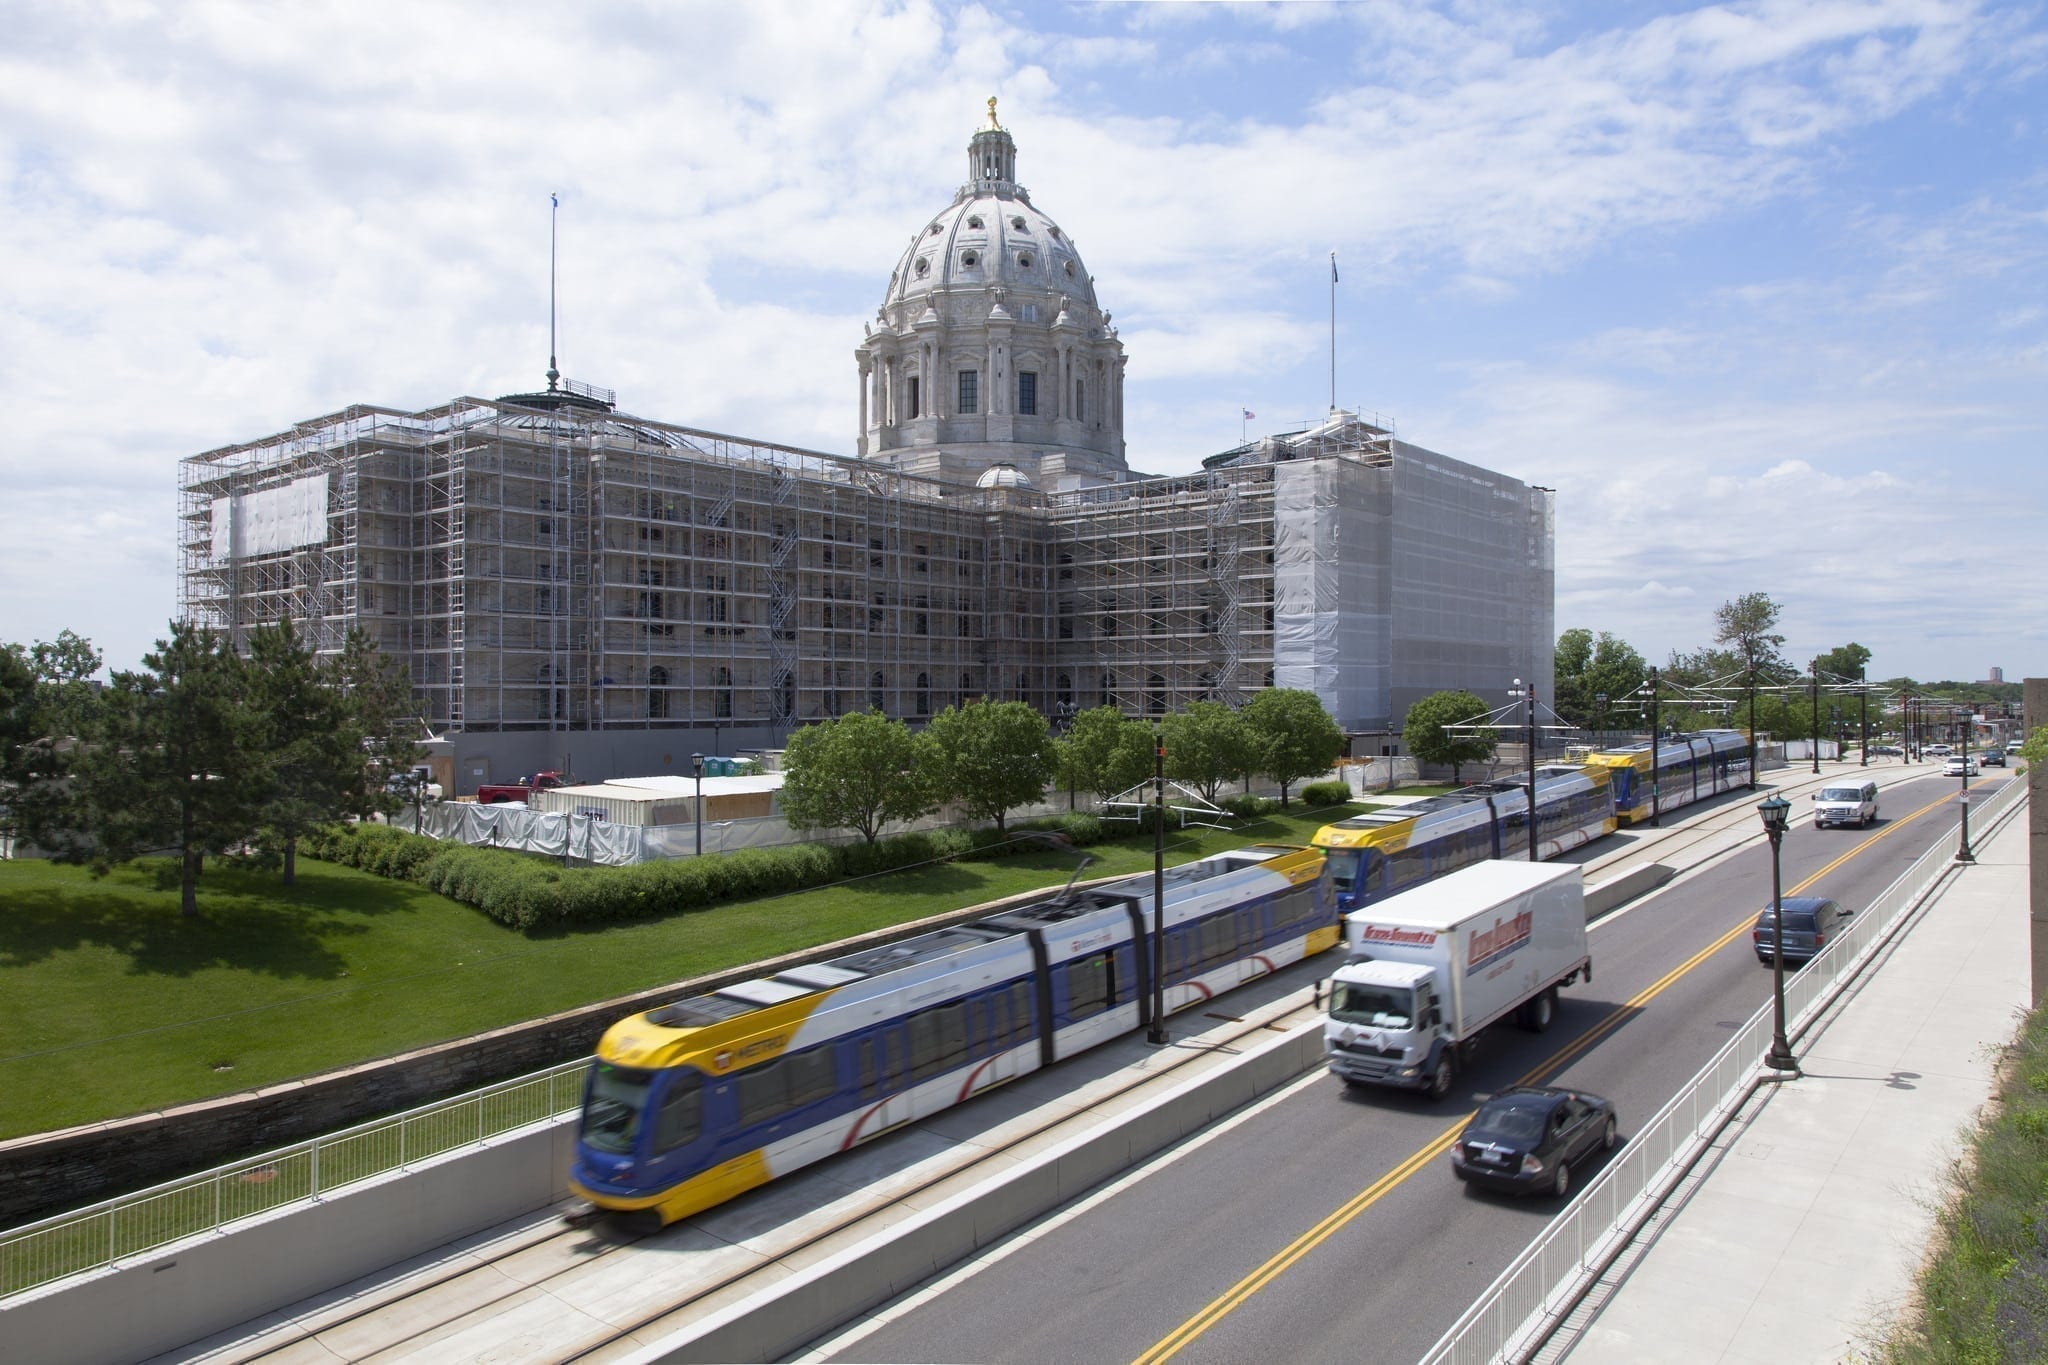 Minnesota State Capital behind street with rail transit